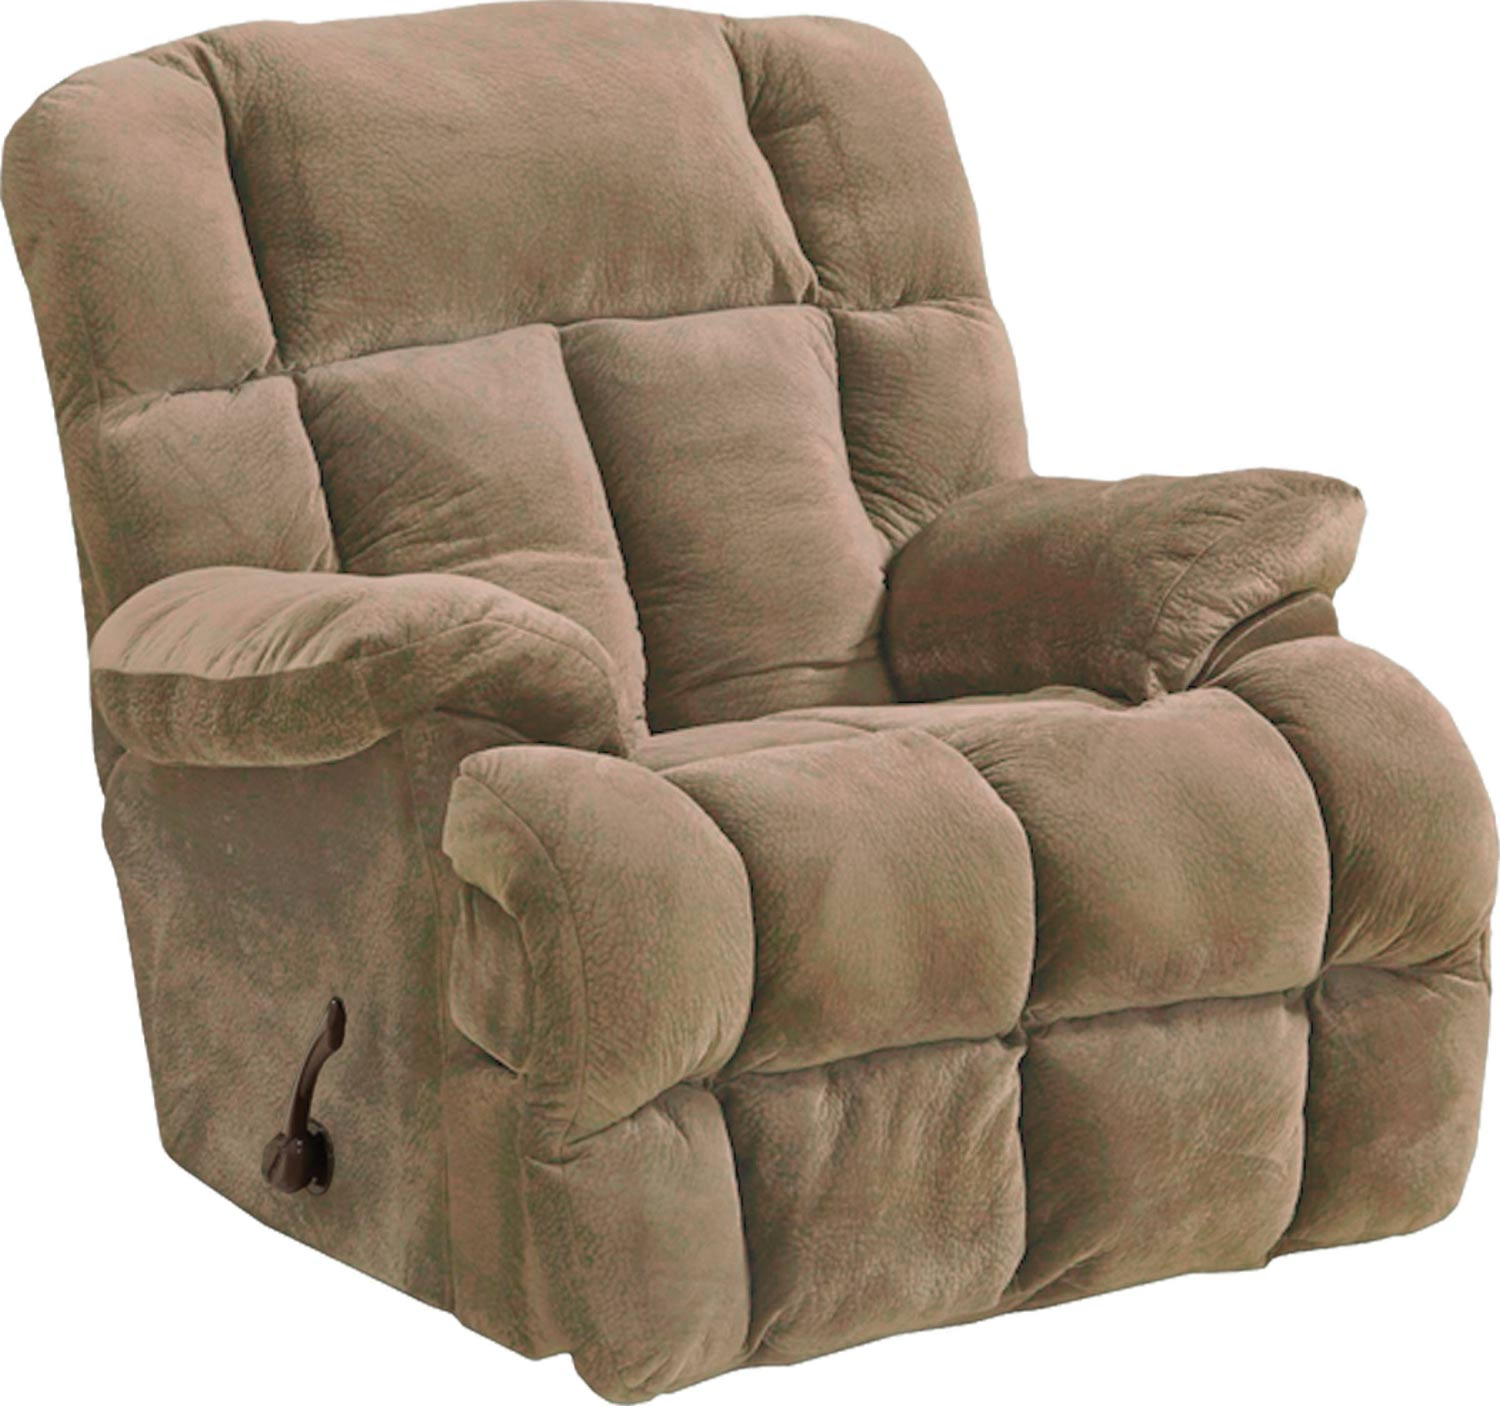 CatNapper Cloud 12 Chaise Rocker Recliner Chair - Camel